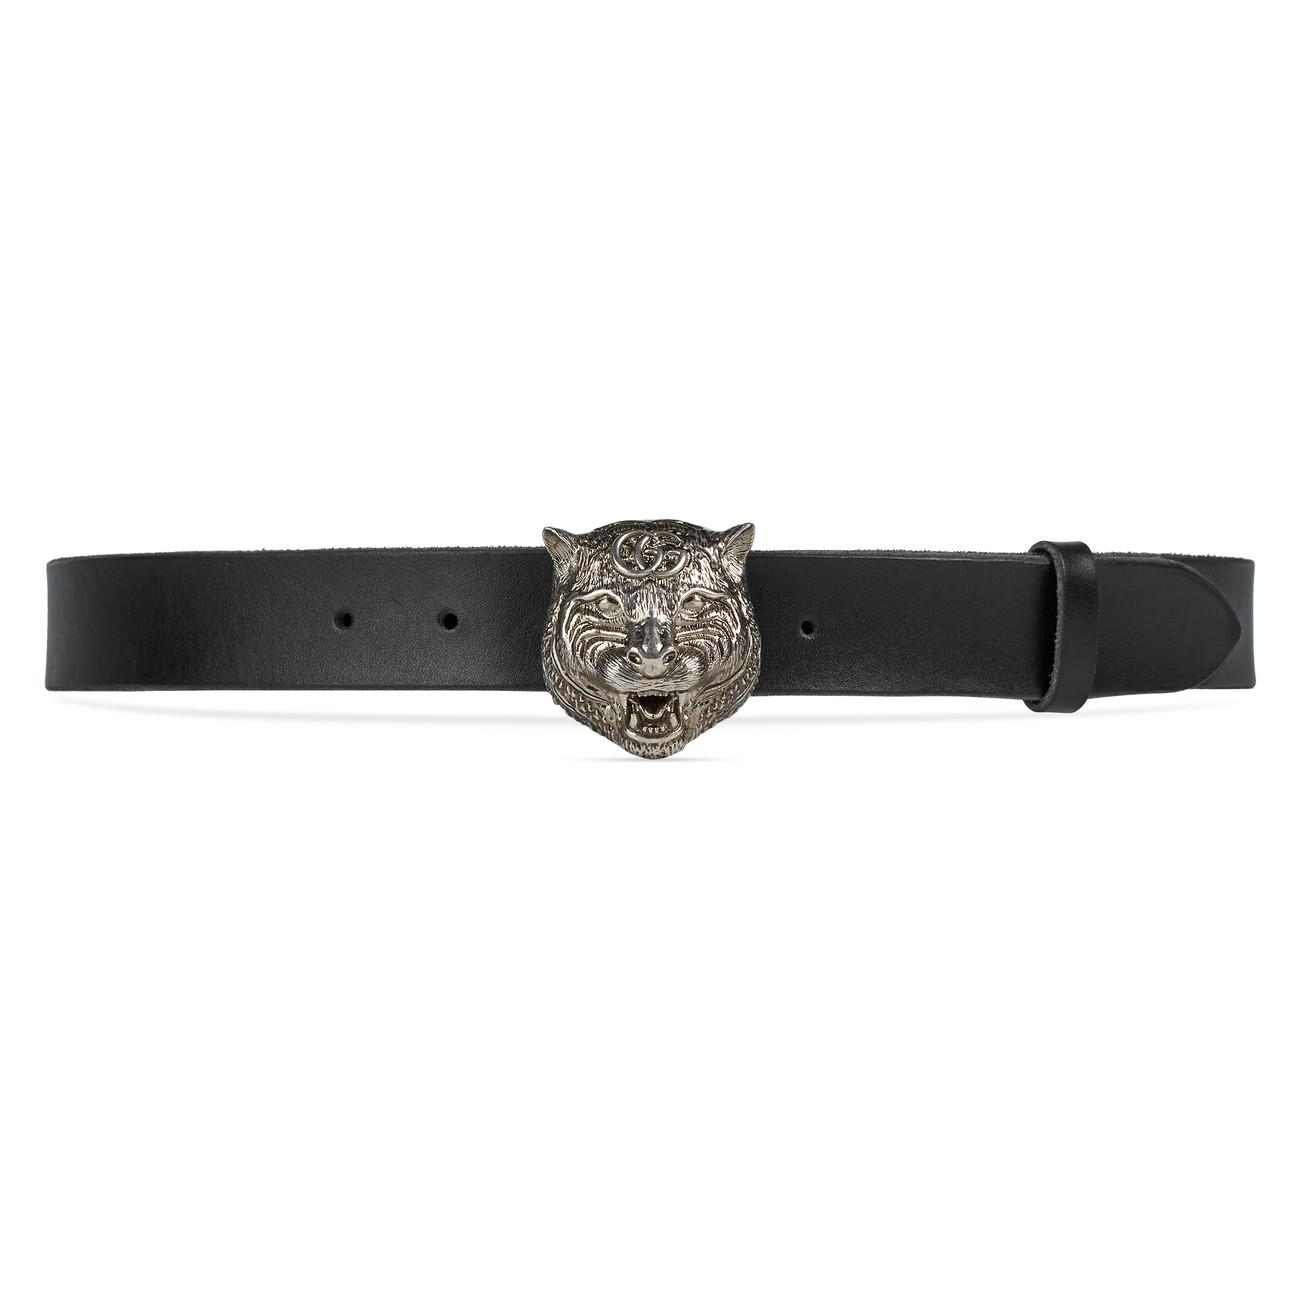 d353e9ef94d Lyst - Gucci Leather Belt With Feline Head in Black for Men - Save 13%